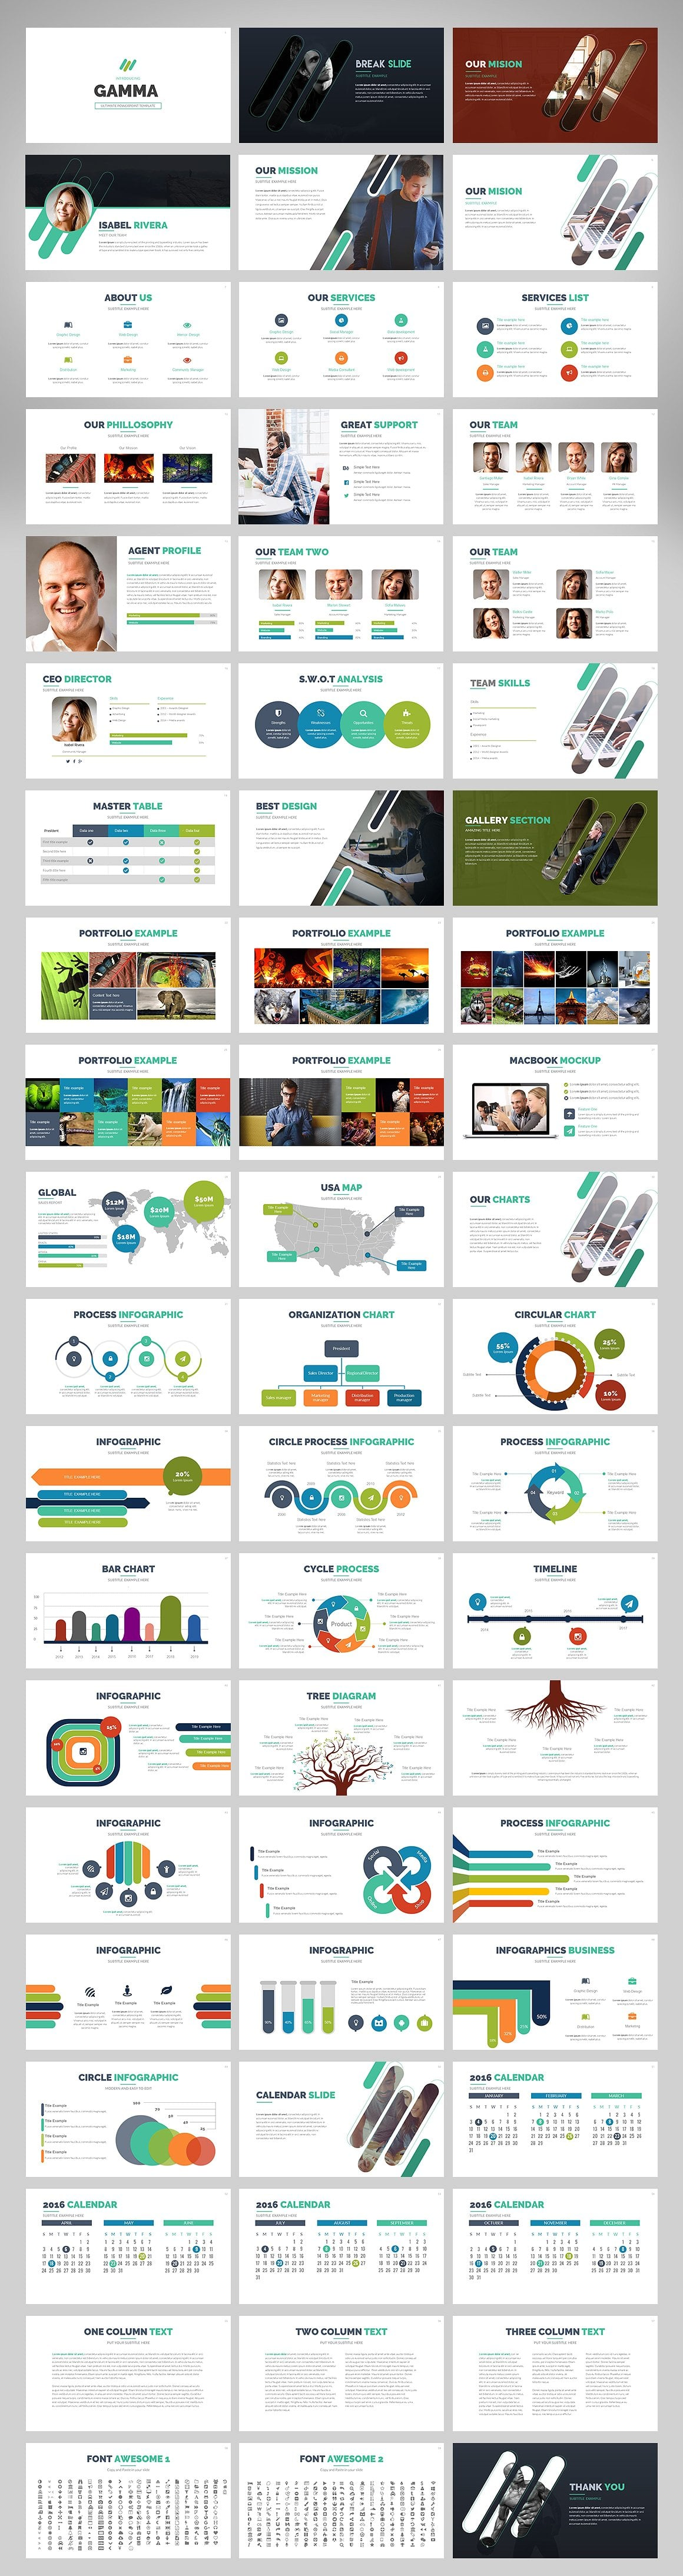 20 Powerpoint Templates with 81% OFF - Gamma 02